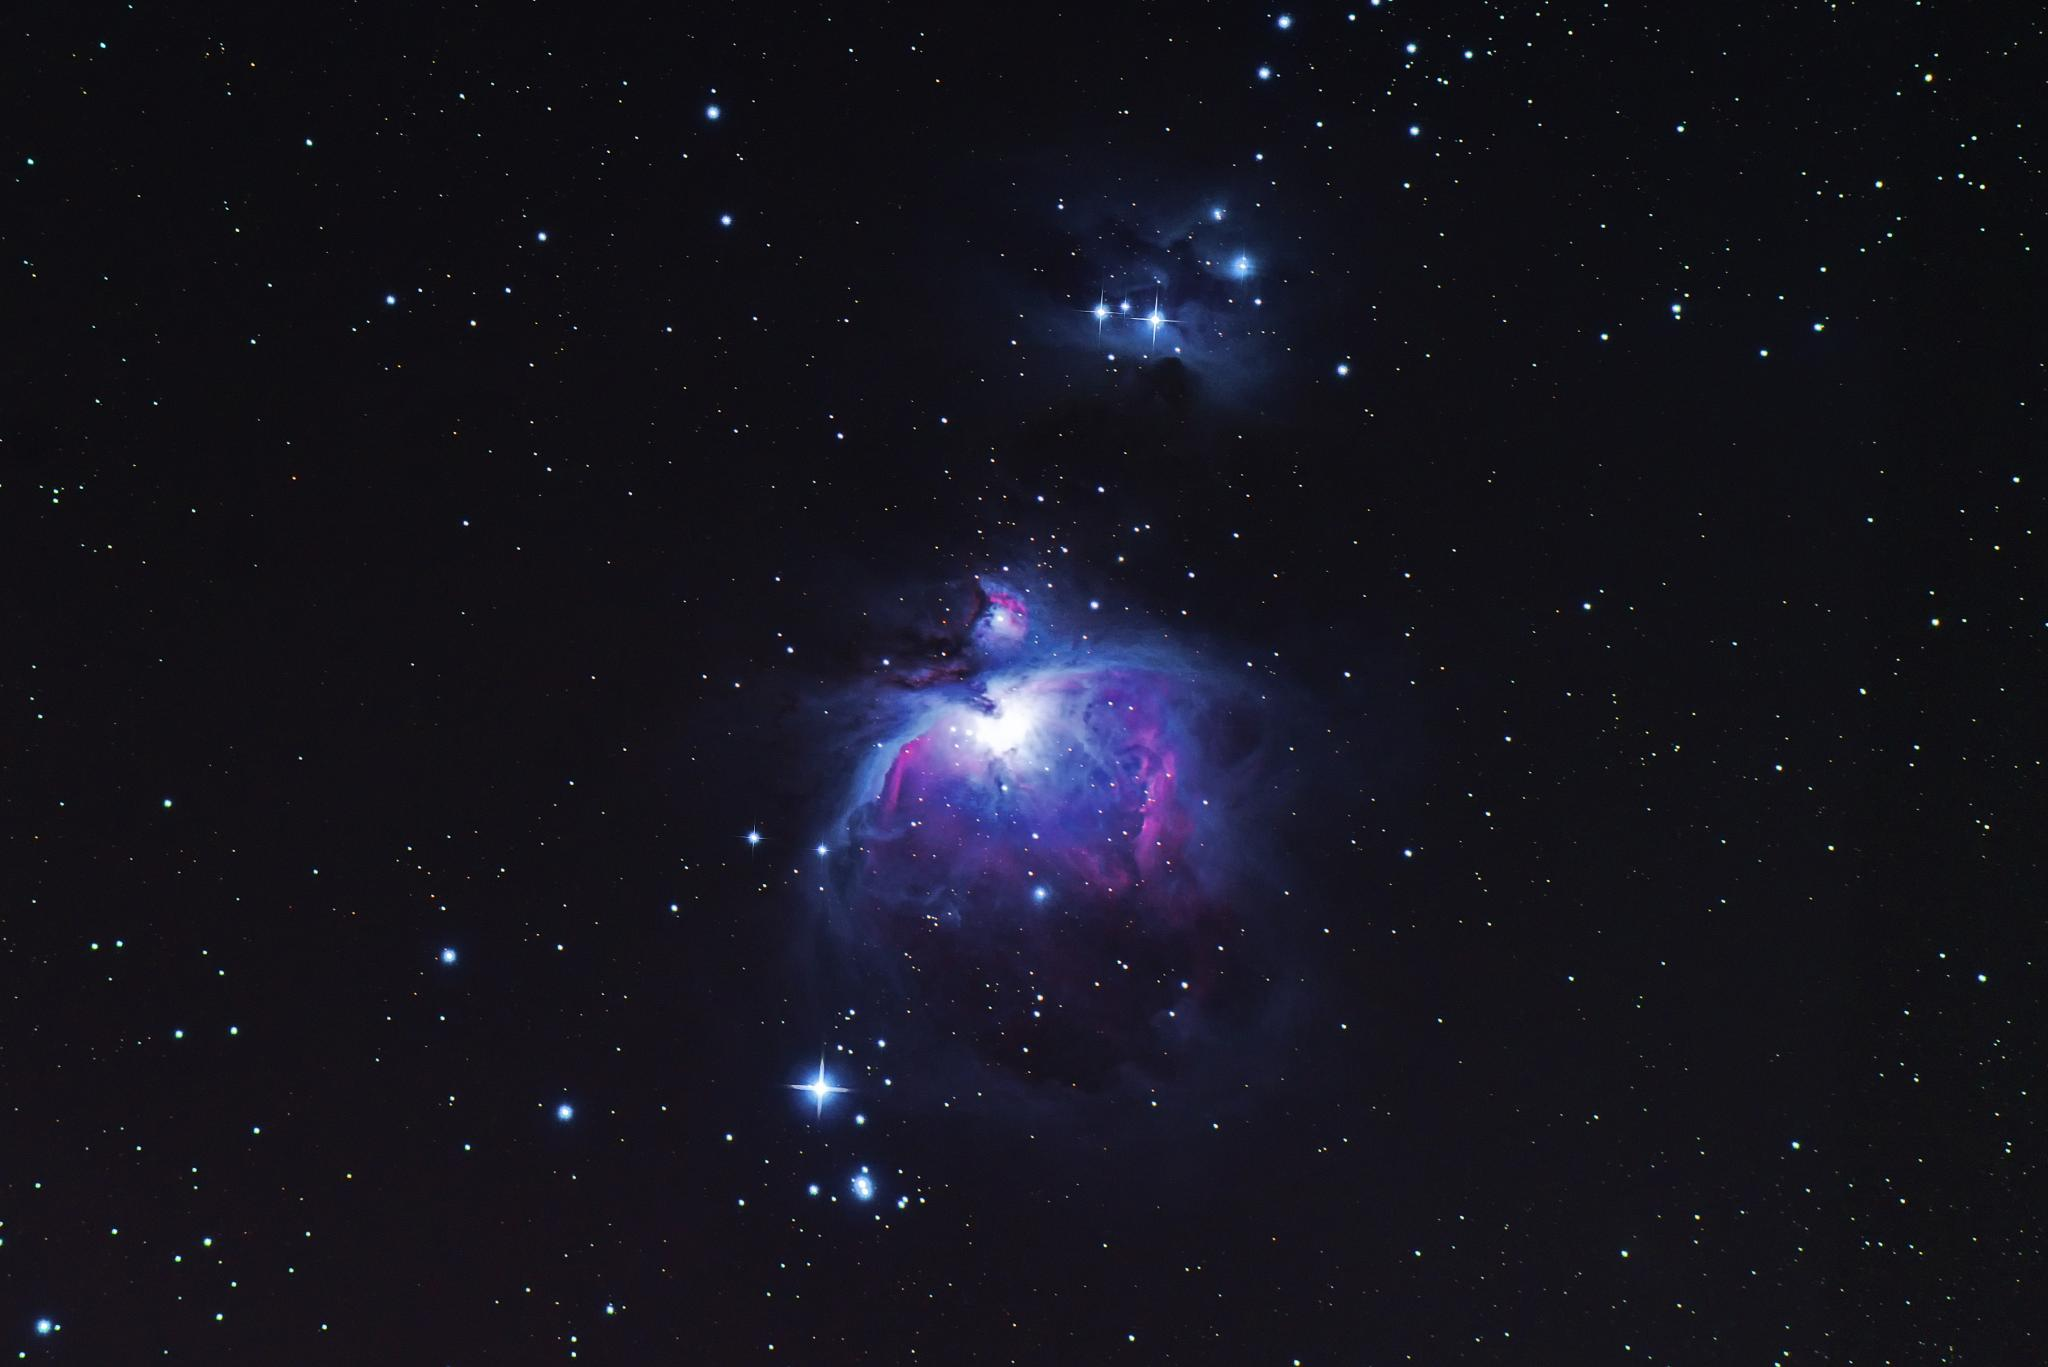 Messier M42 by mescal69